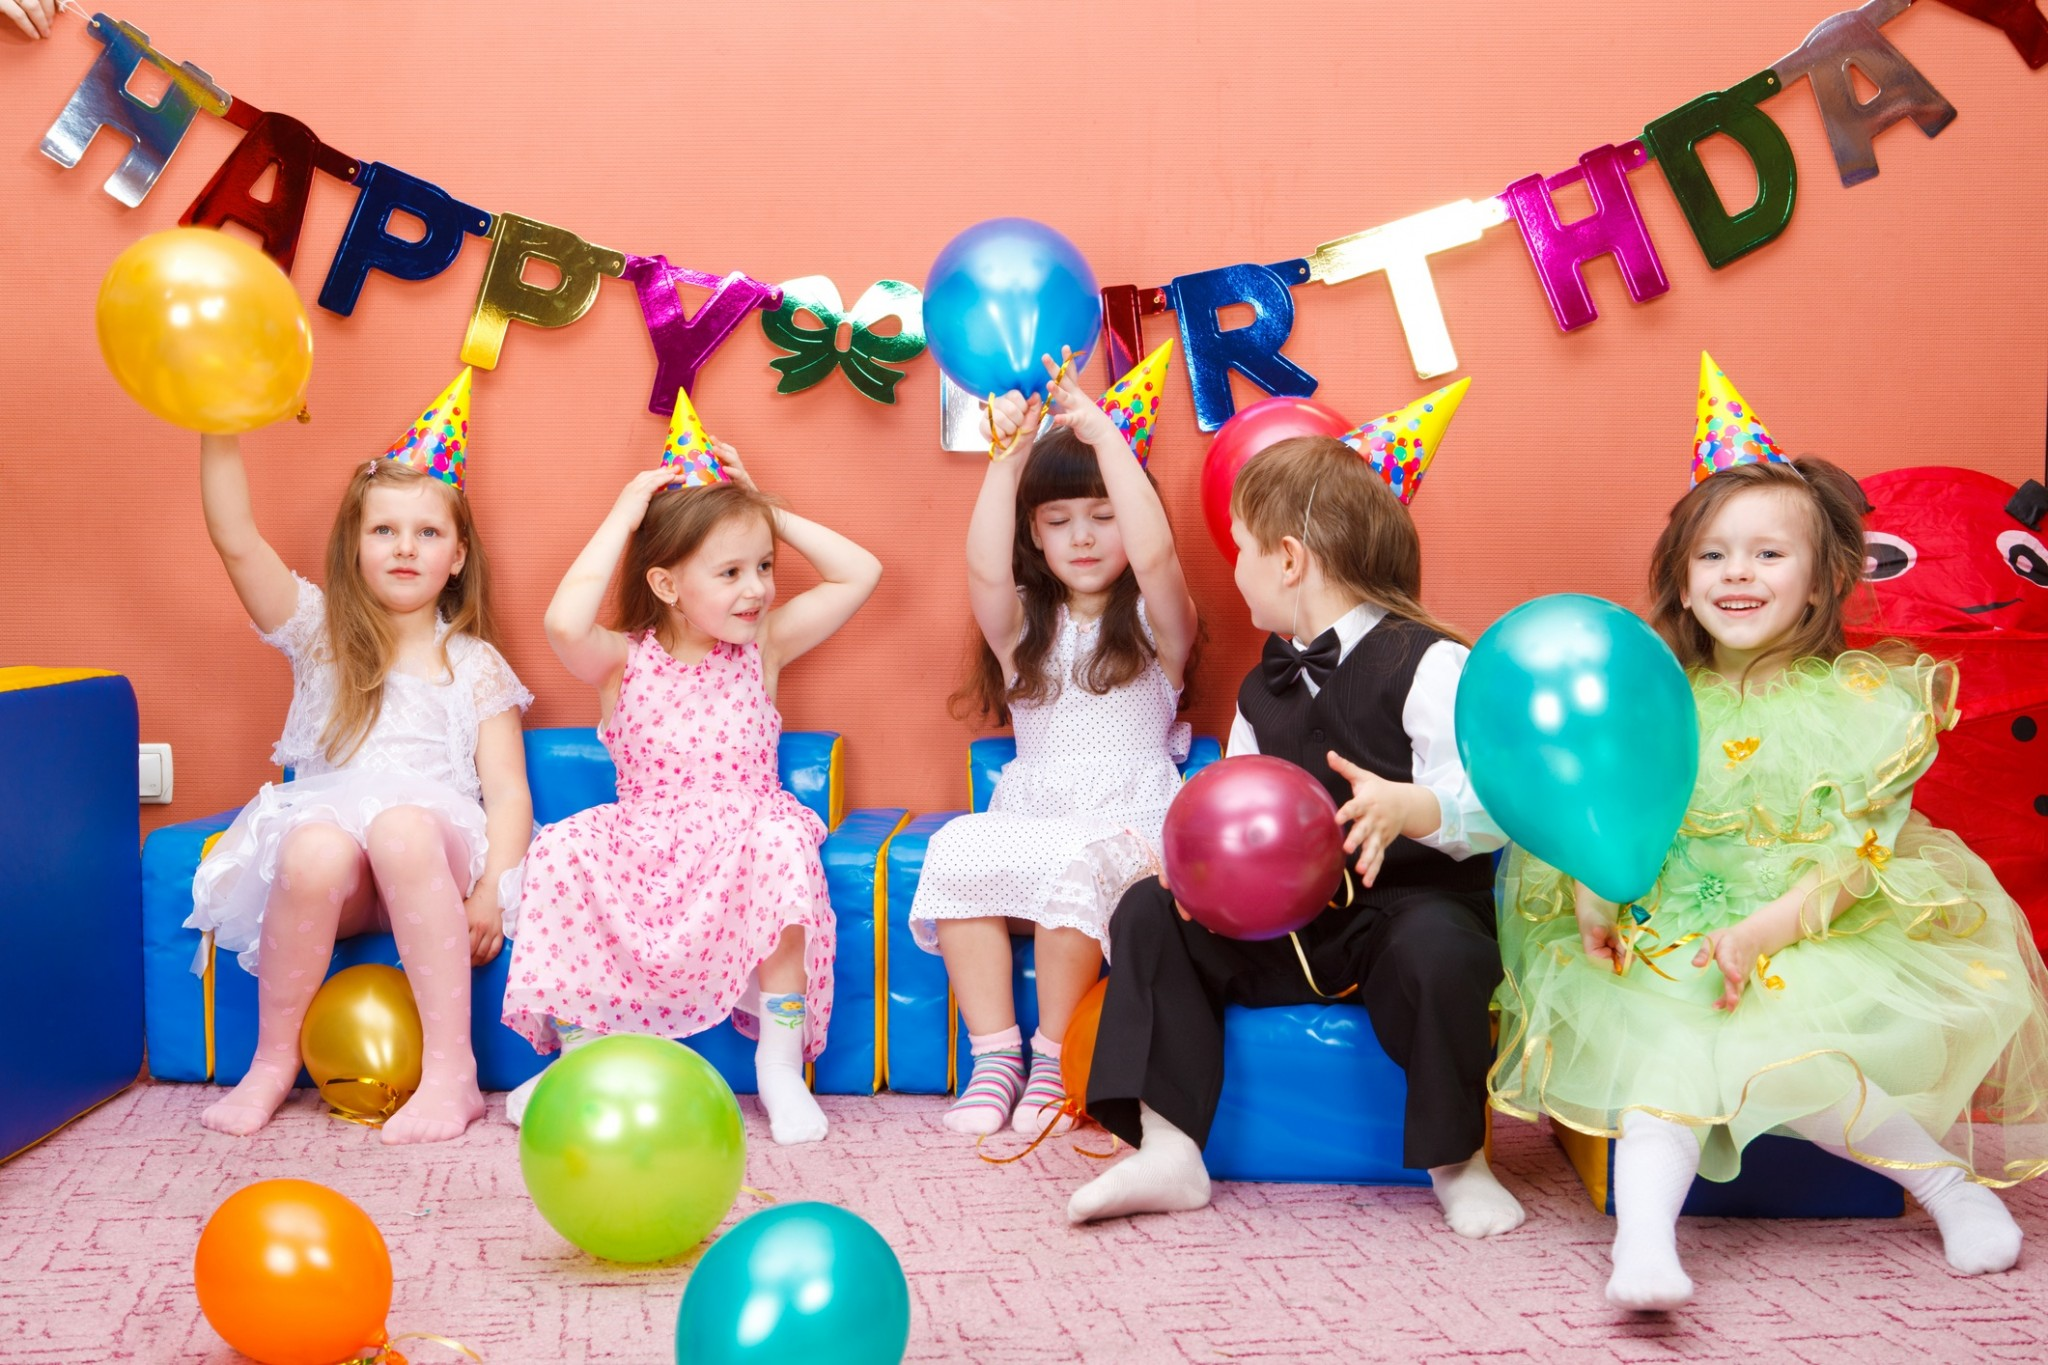 St Year Old Birthday Party First Kids Parties - Childrens birthday party ideas in london